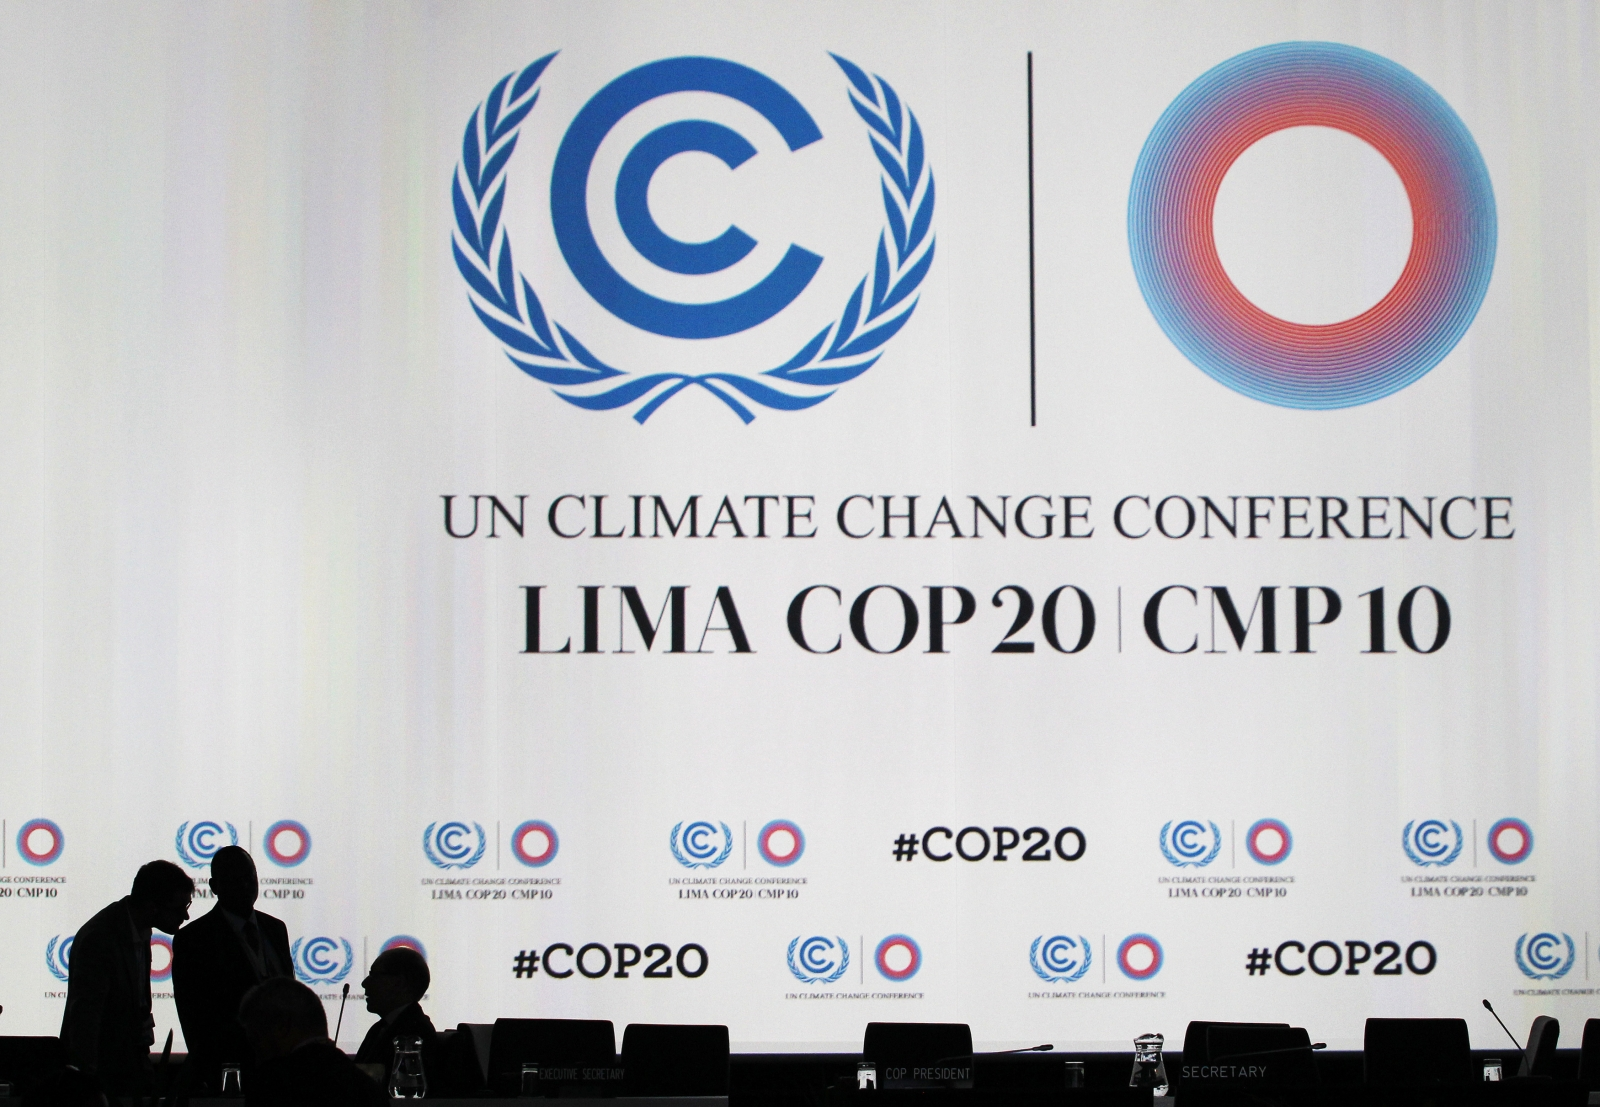 UN climate change talks in Lima, Peru